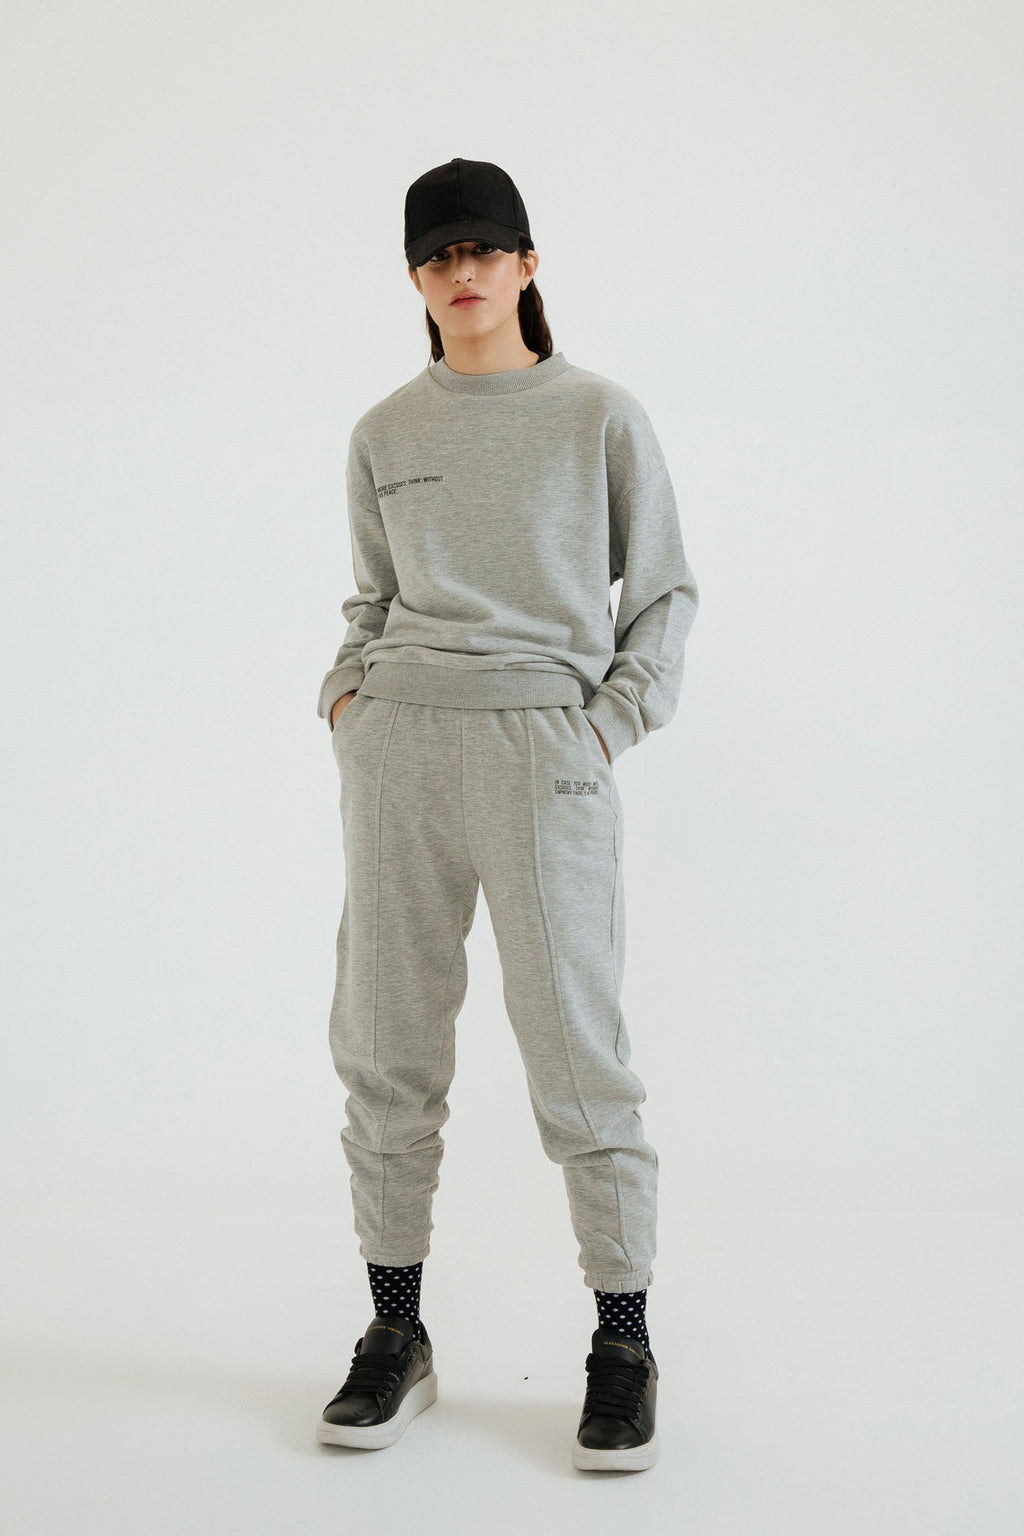 KNIT TERRY TRACK SUIT (WTW401783) - Ethnic by Outfitters